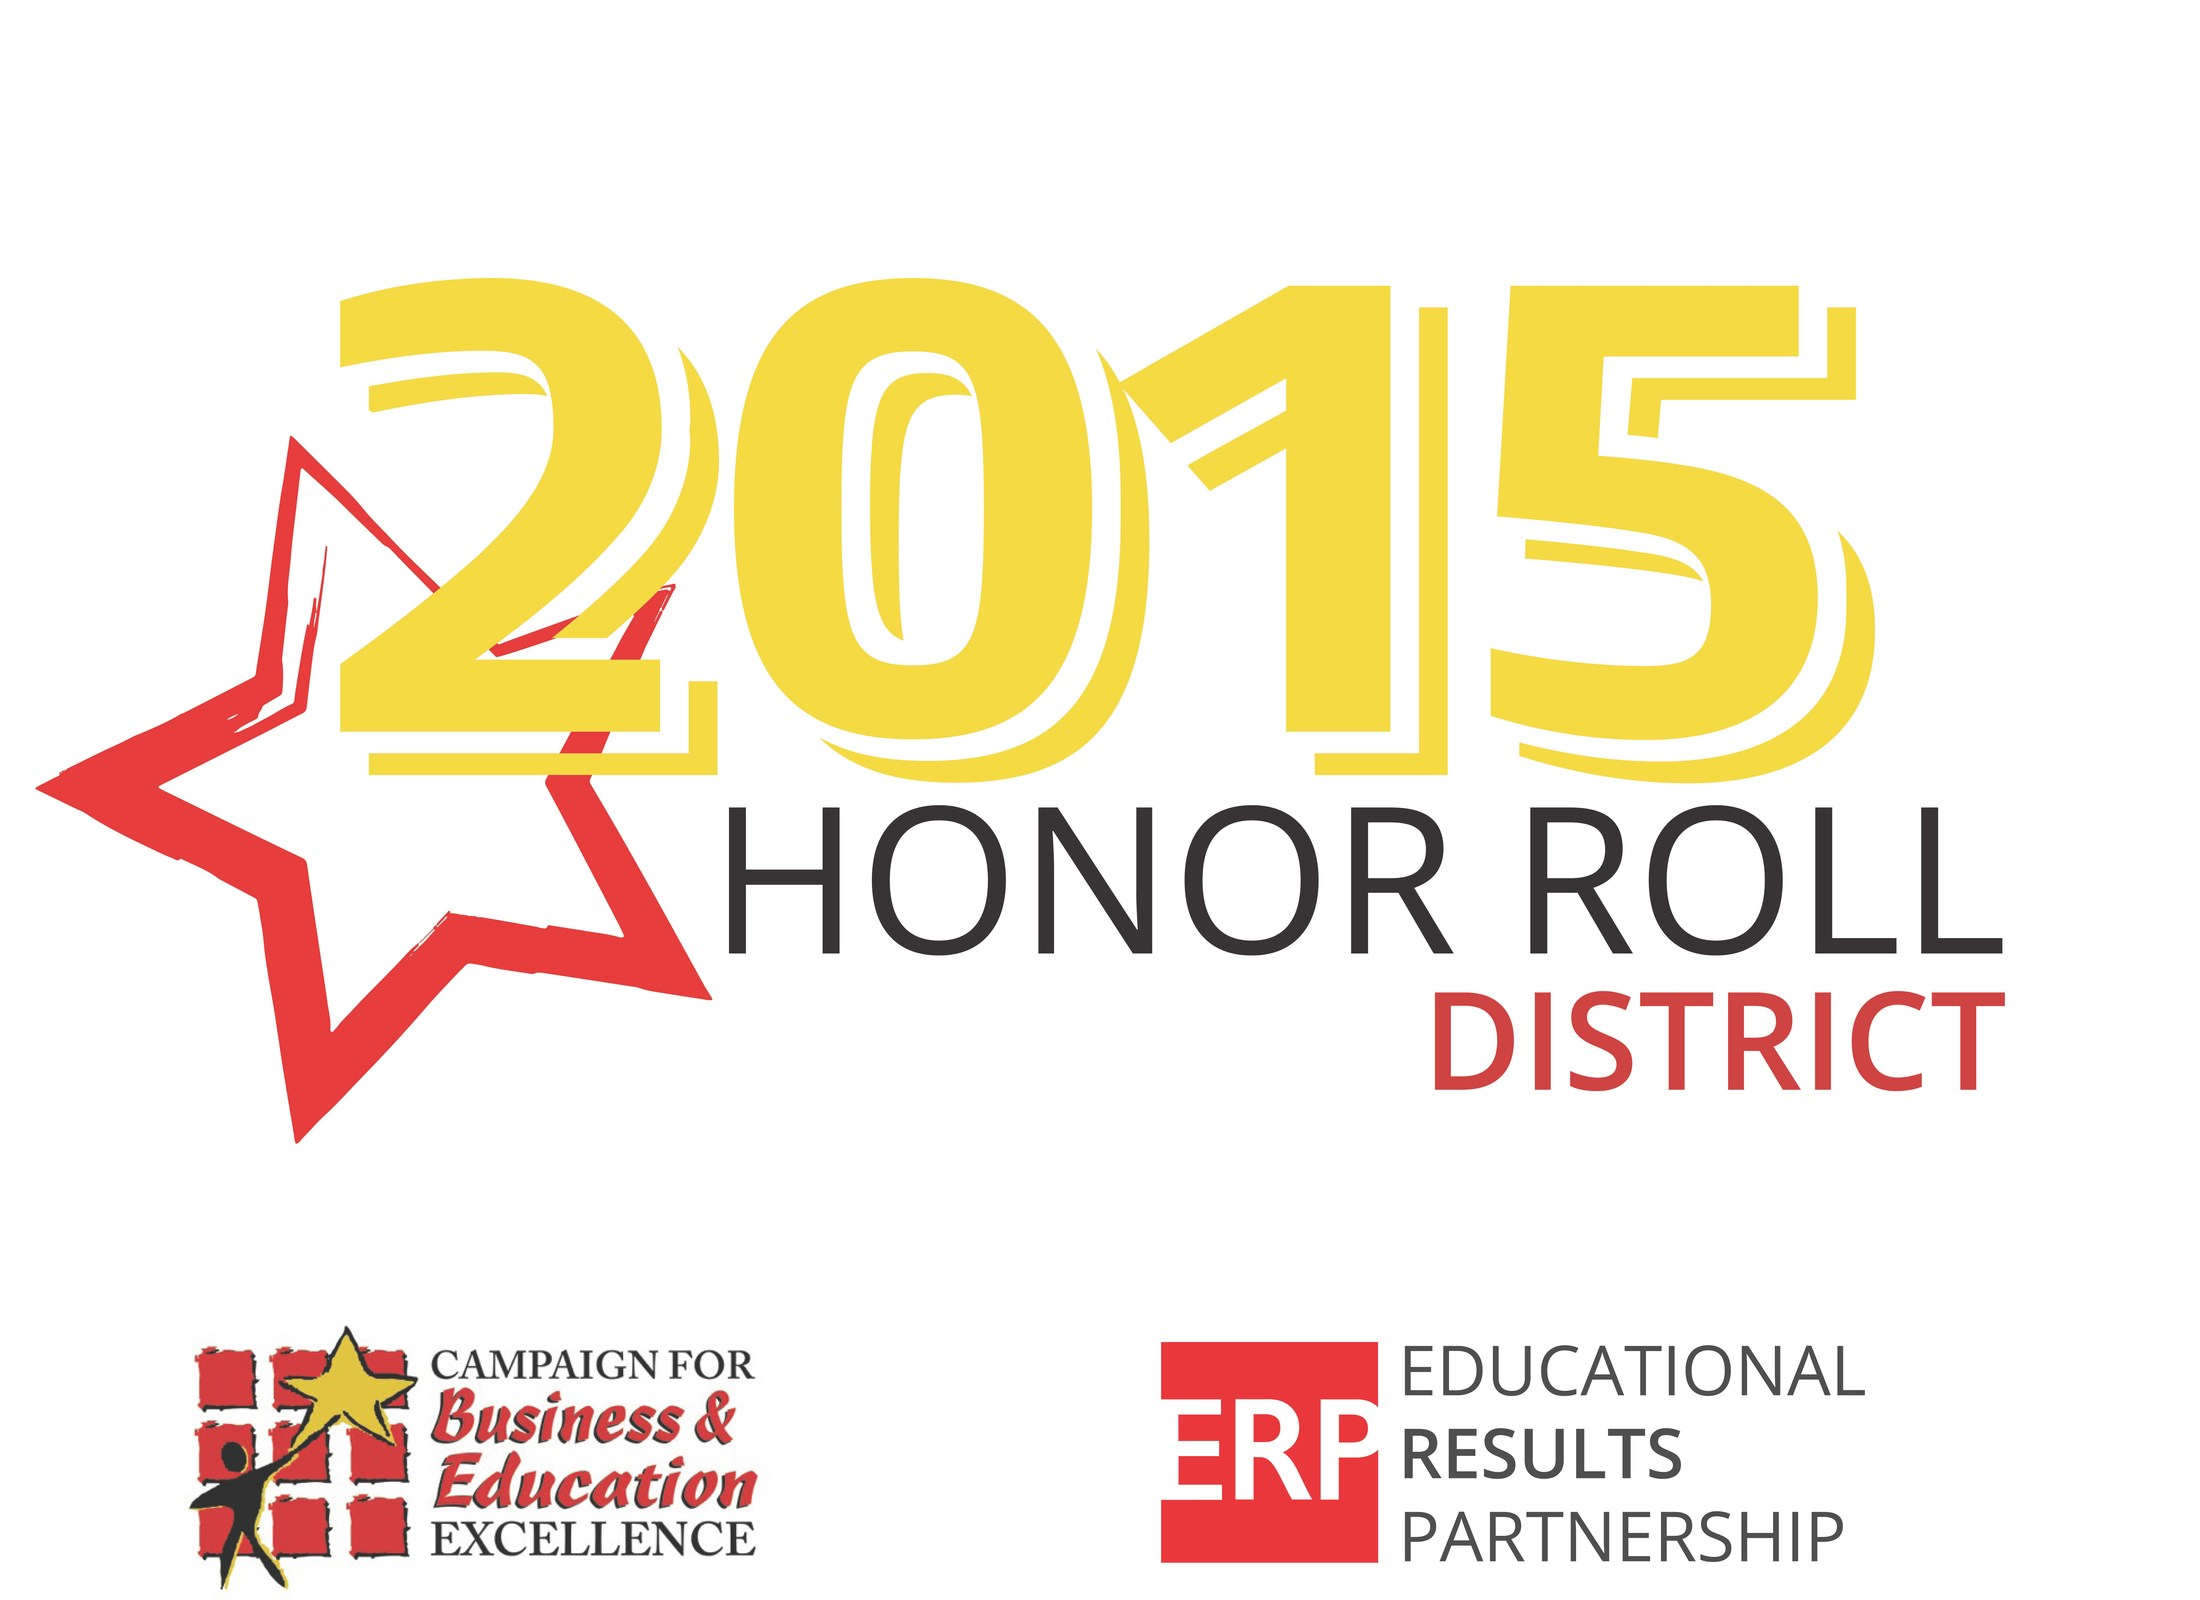 2015 Honor Roll District Award logo